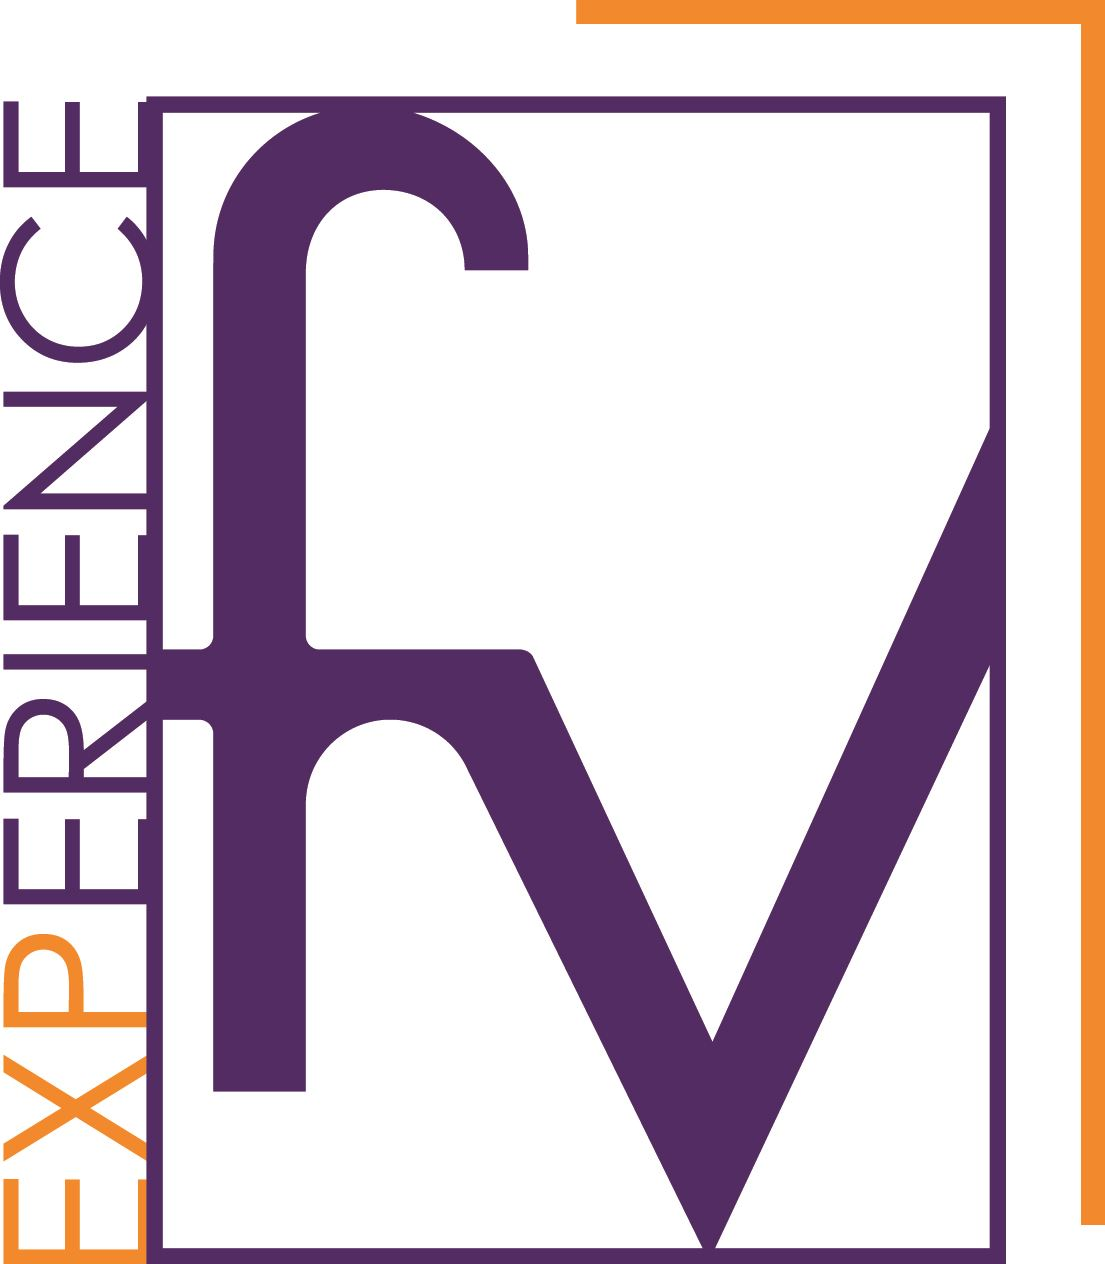 Experience_fv_logo_color